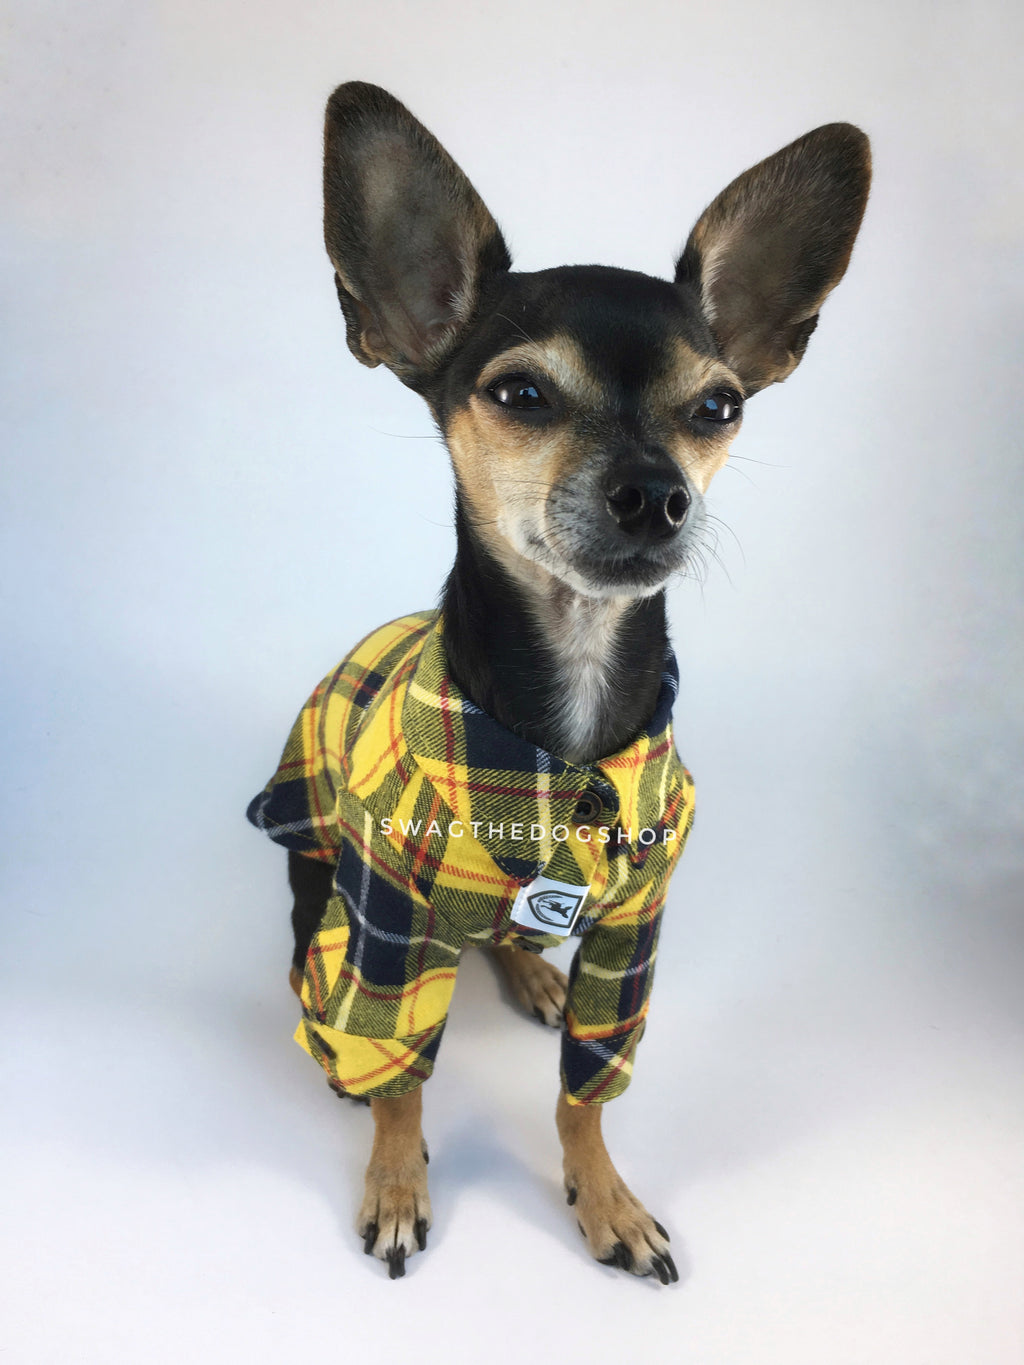 Bumble Bee Plaid Shirt - Full Front View of Cute Chihuahua Dog Wearing Shirt. Yellow and Black Plaid Shirt